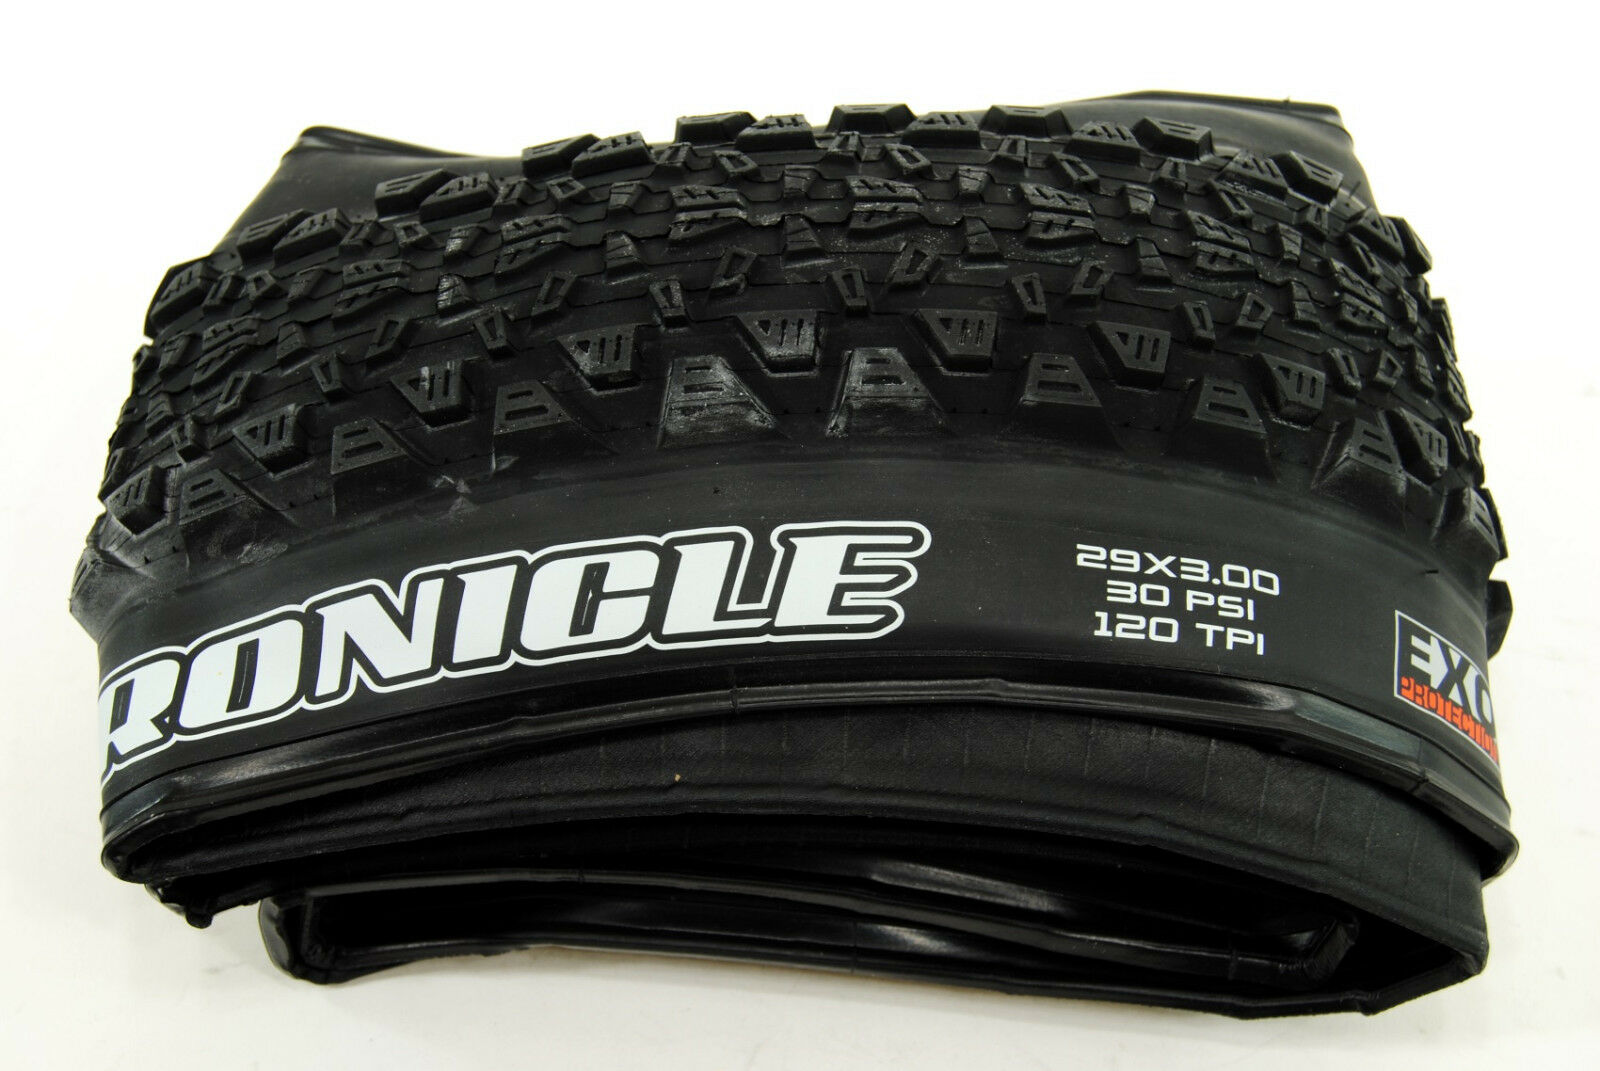 Maxxis Chronicle 29+ 29er MTB Tire 29 x 3.0  Dual Compound EXO Tubeless Ready  new style